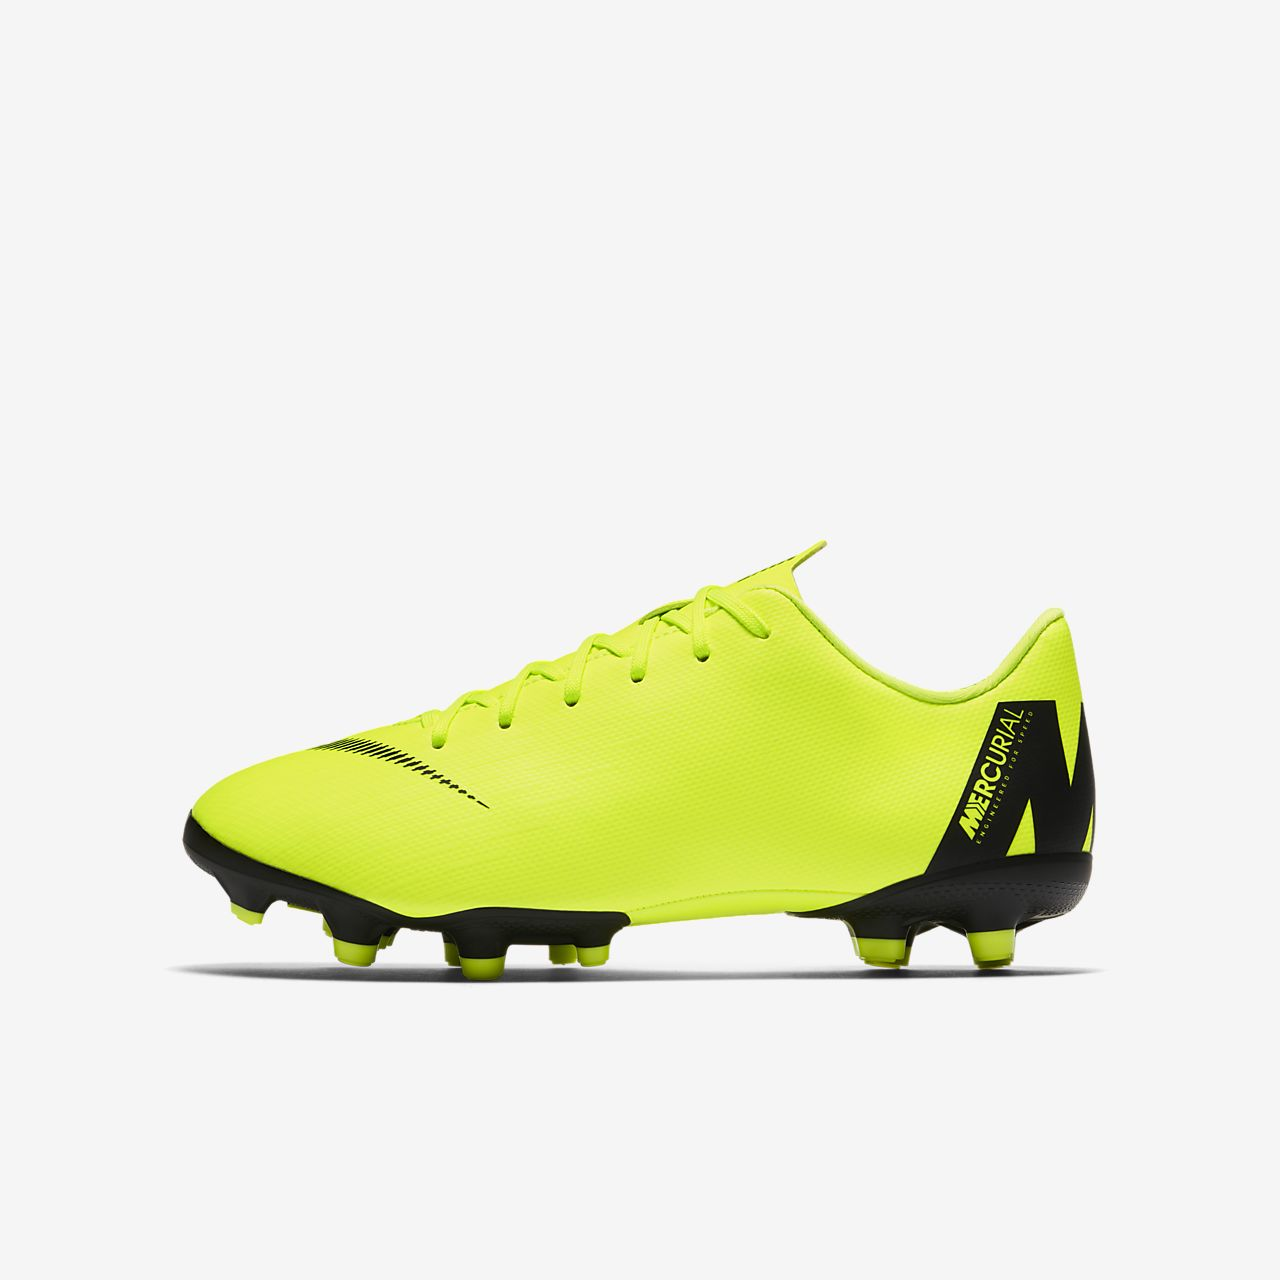 881552038ef ... Nike Jr. Mercurial Vapor XII Academy Little Big Kids  Multi-Ground  Soccer